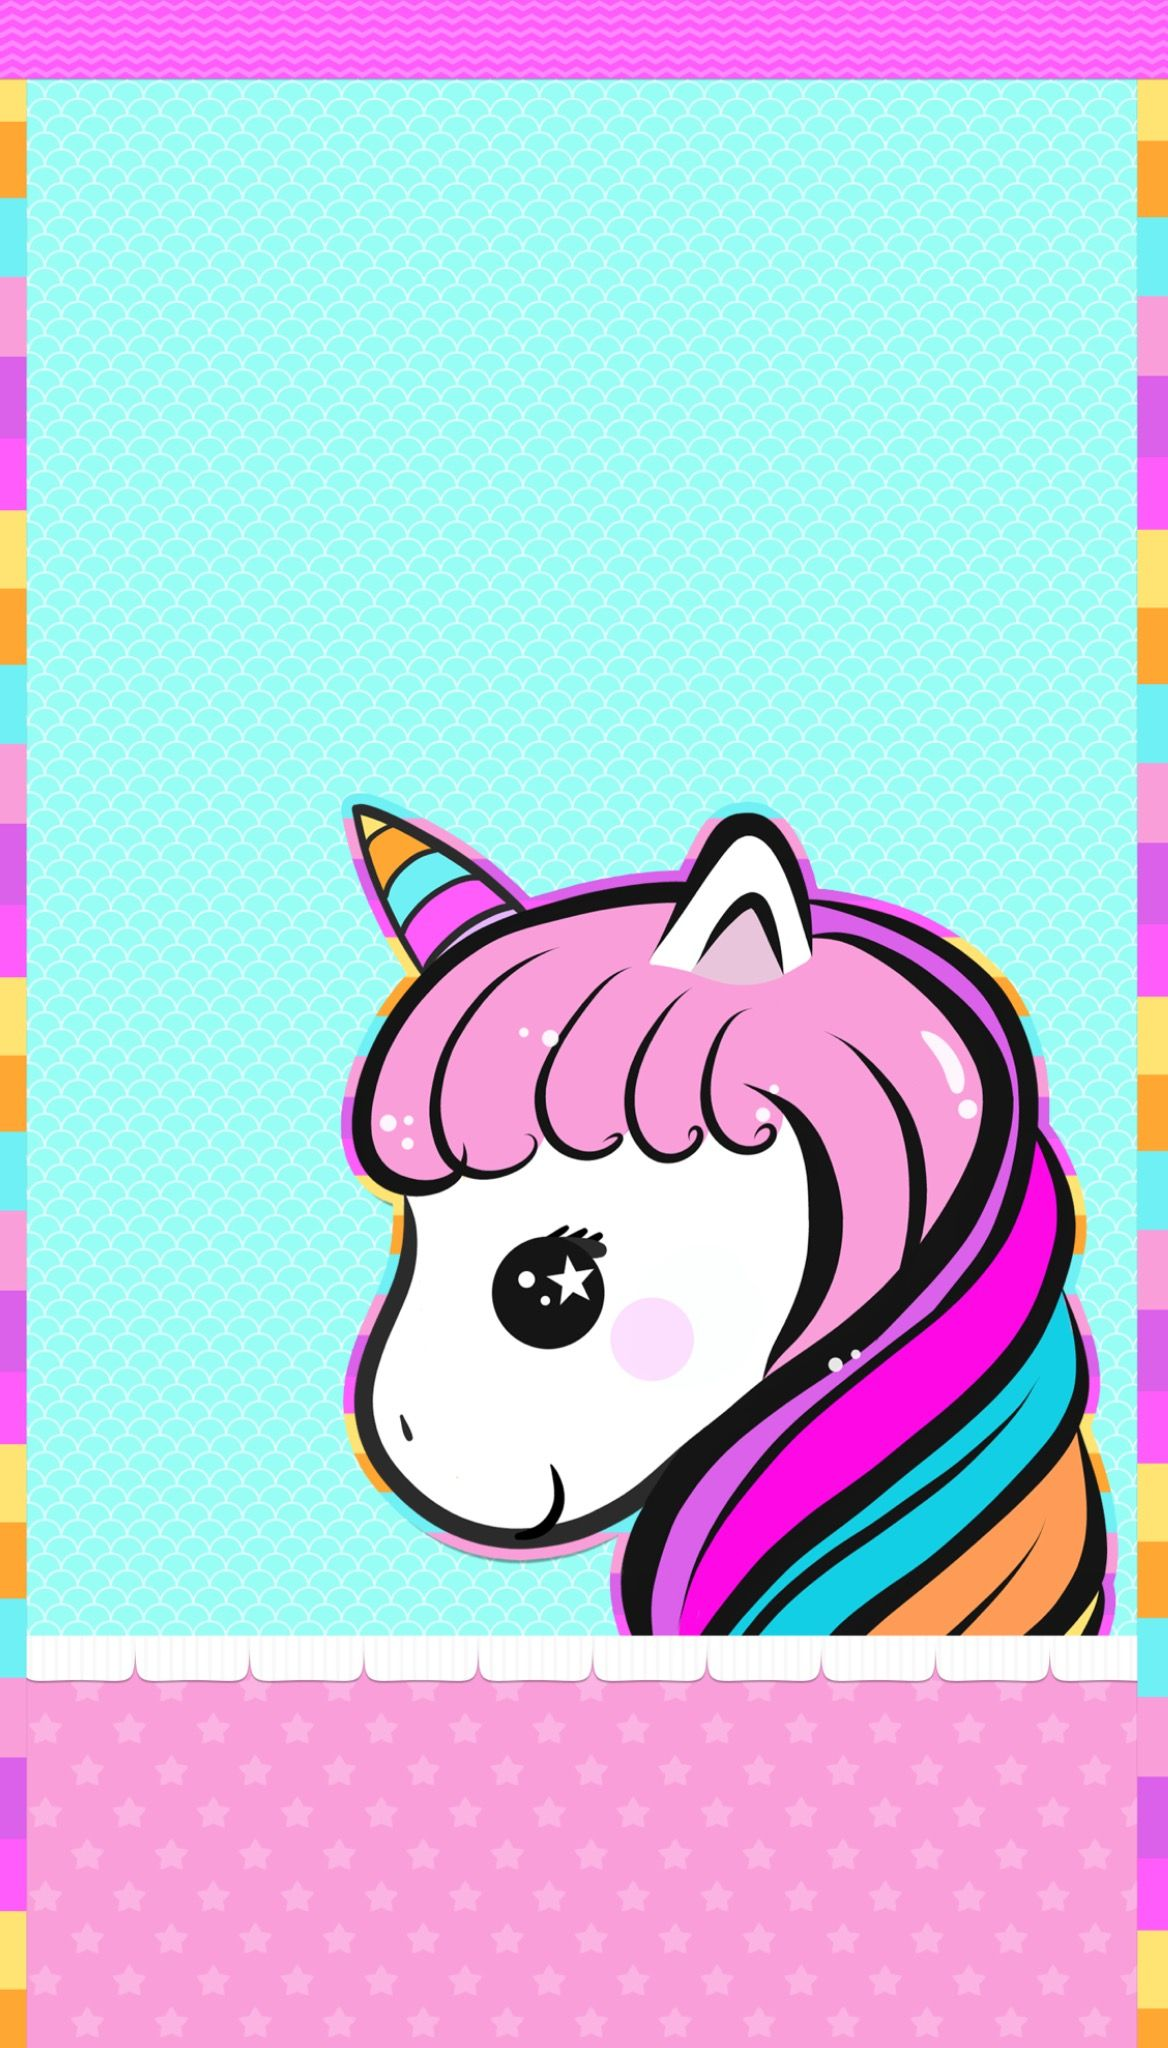 Cute unicorn wallpaper Imagenes de unicornios, Fondos de